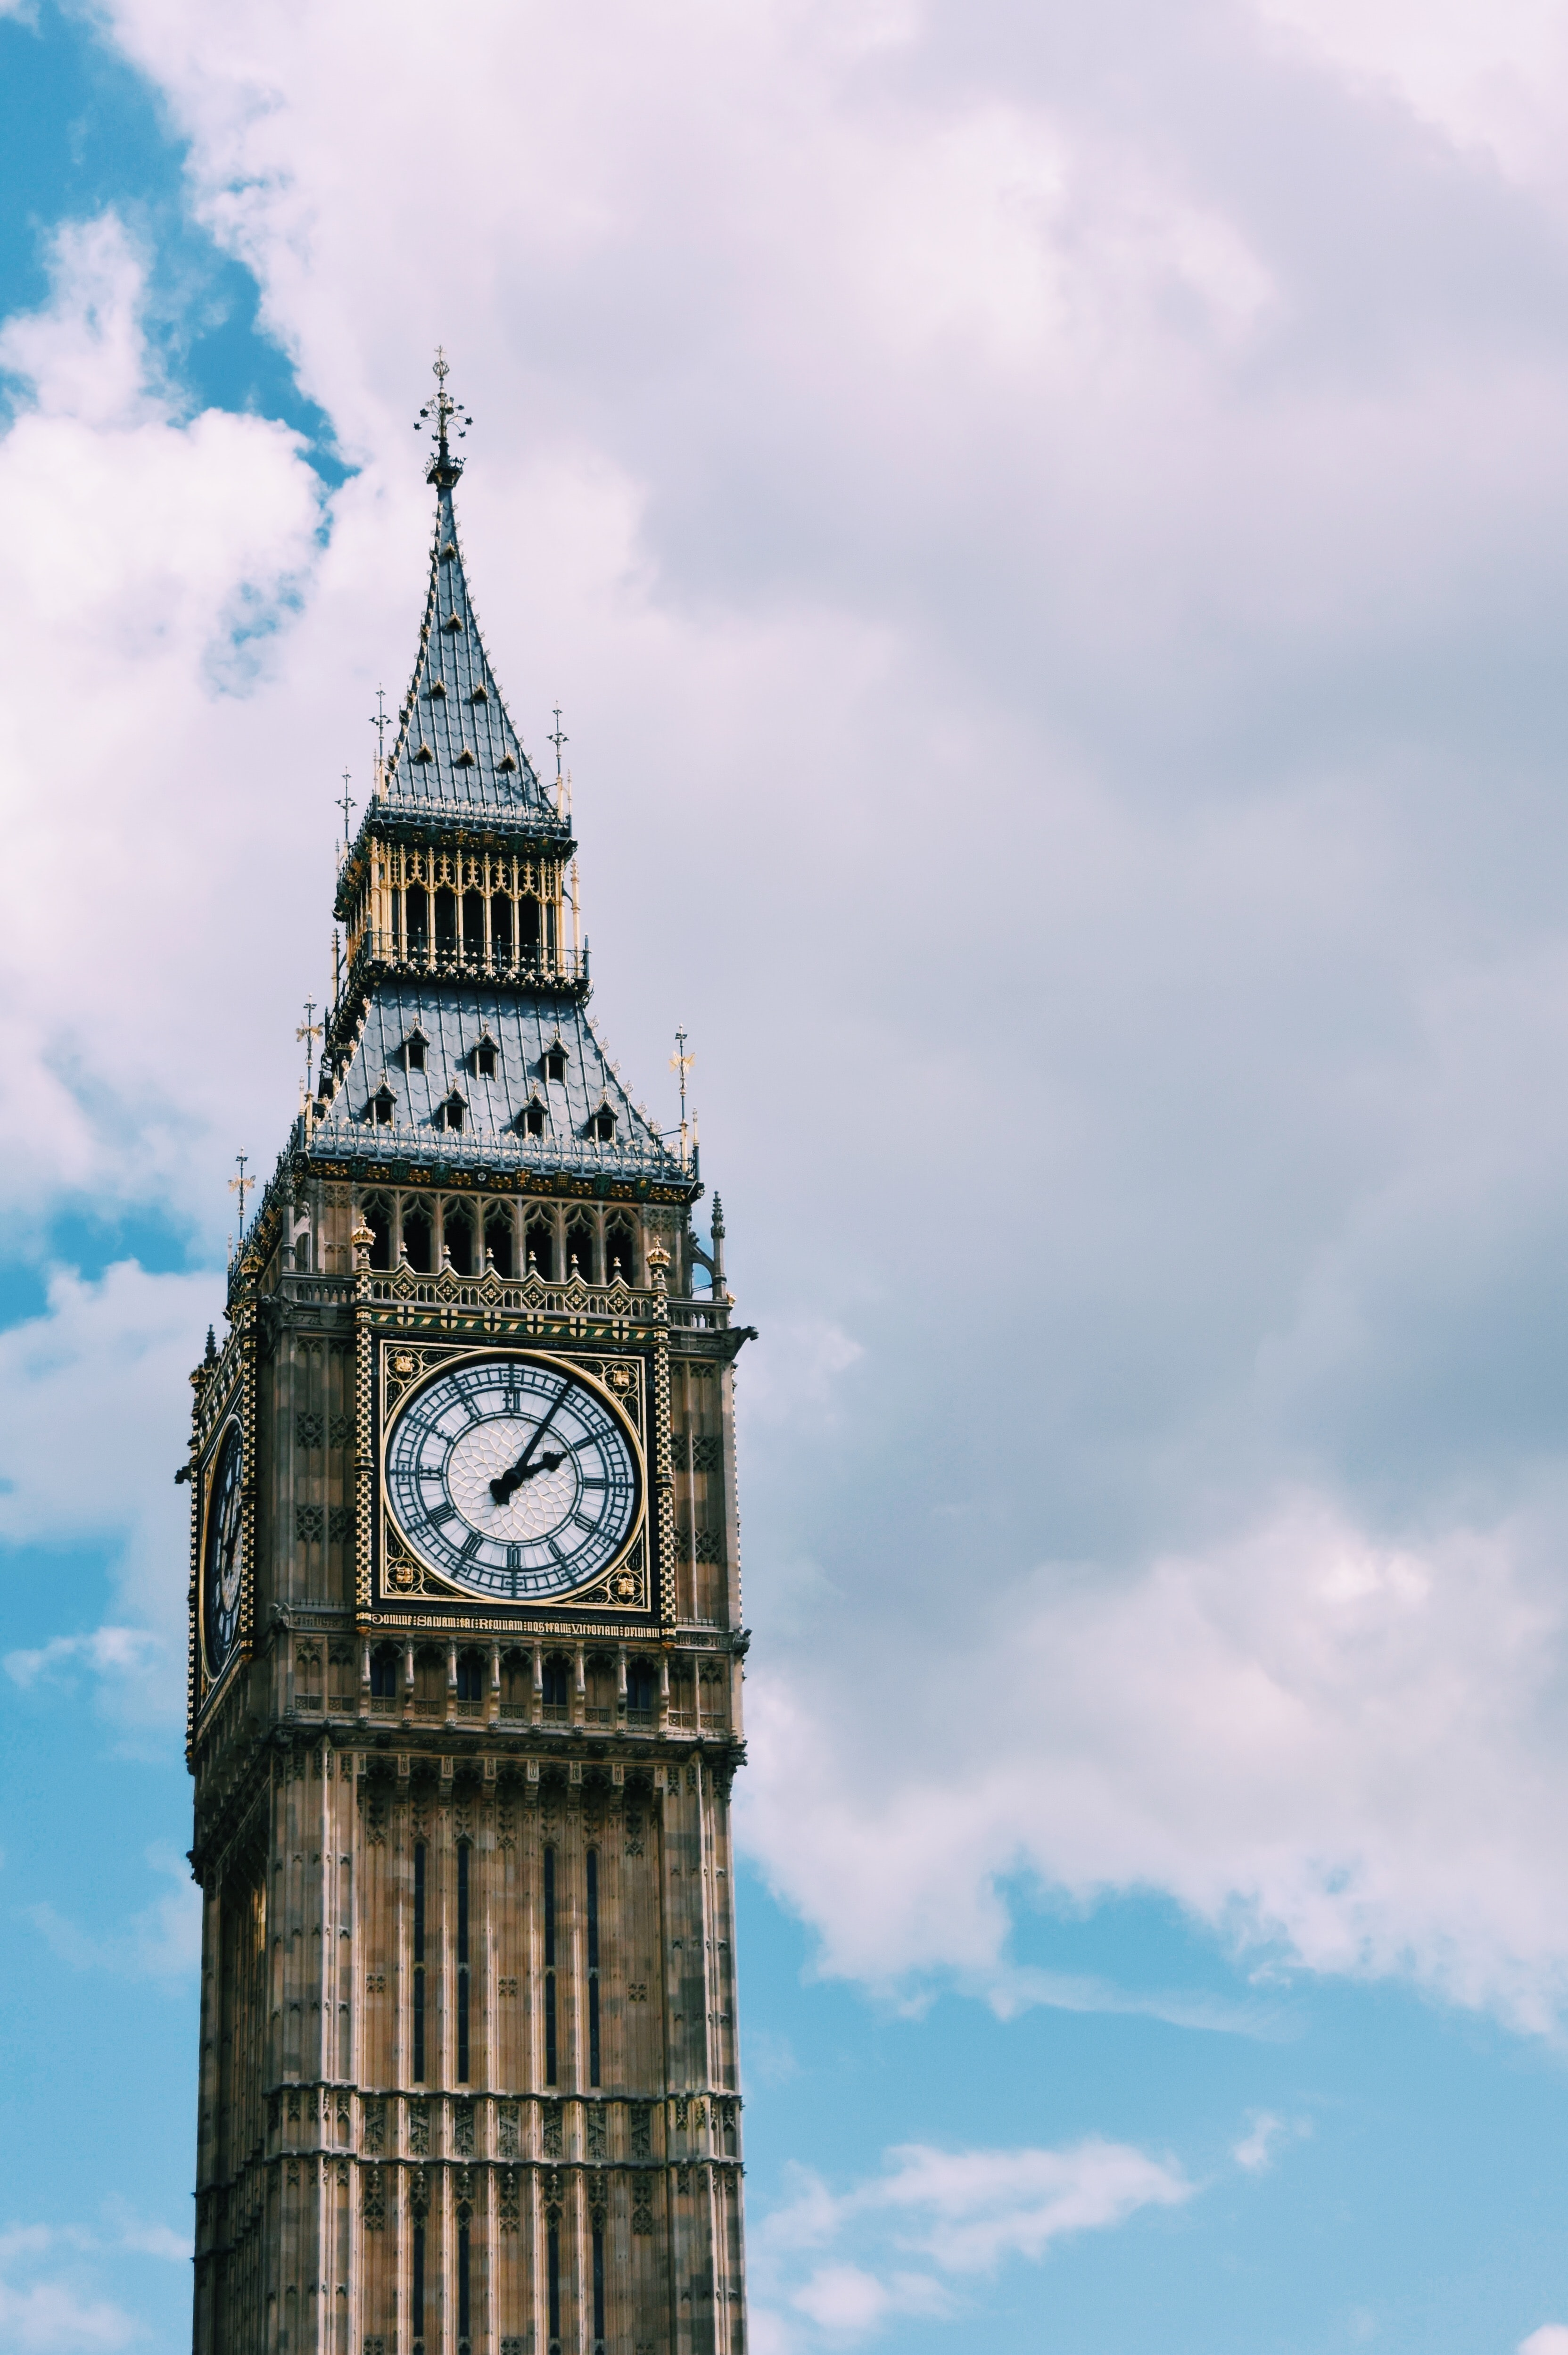 Big Ben Tower, London under white and blue sky